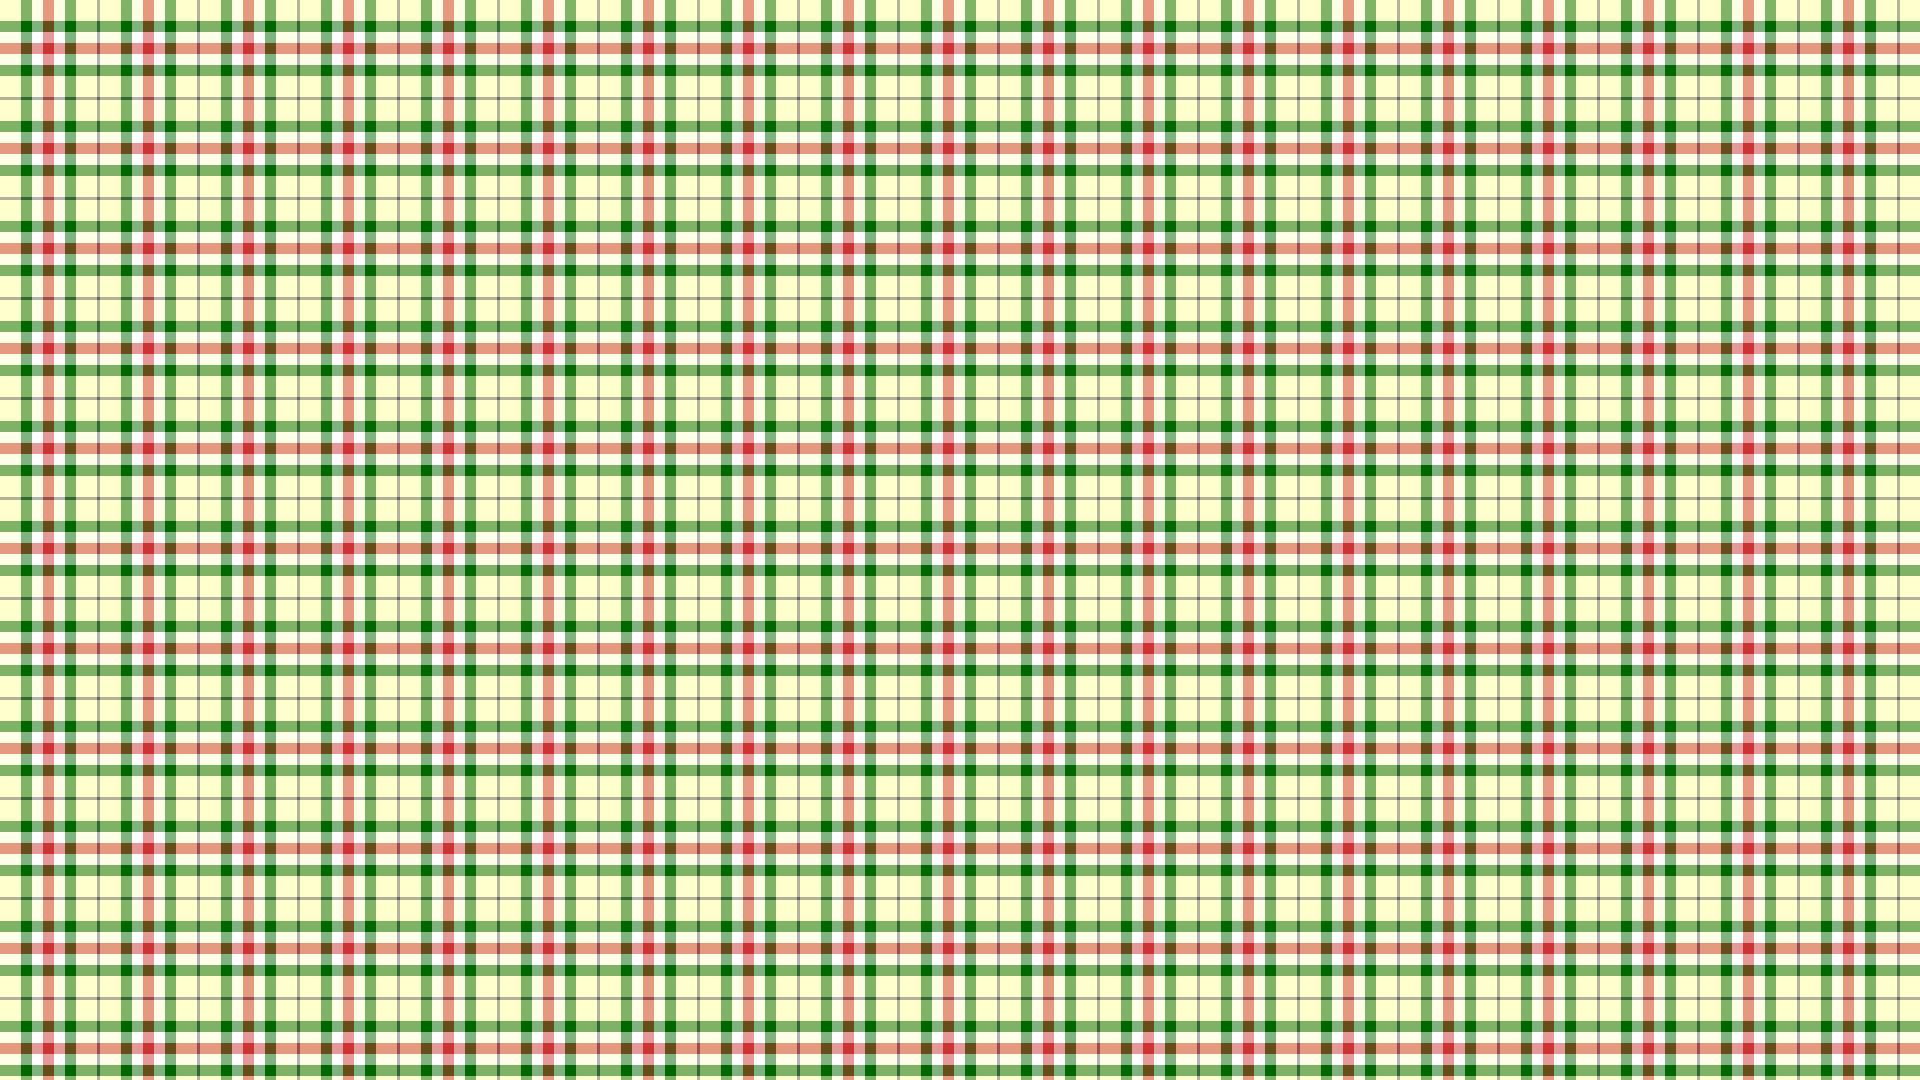 Christmas Plaid Patterns For Photoshop by CyberCat ...